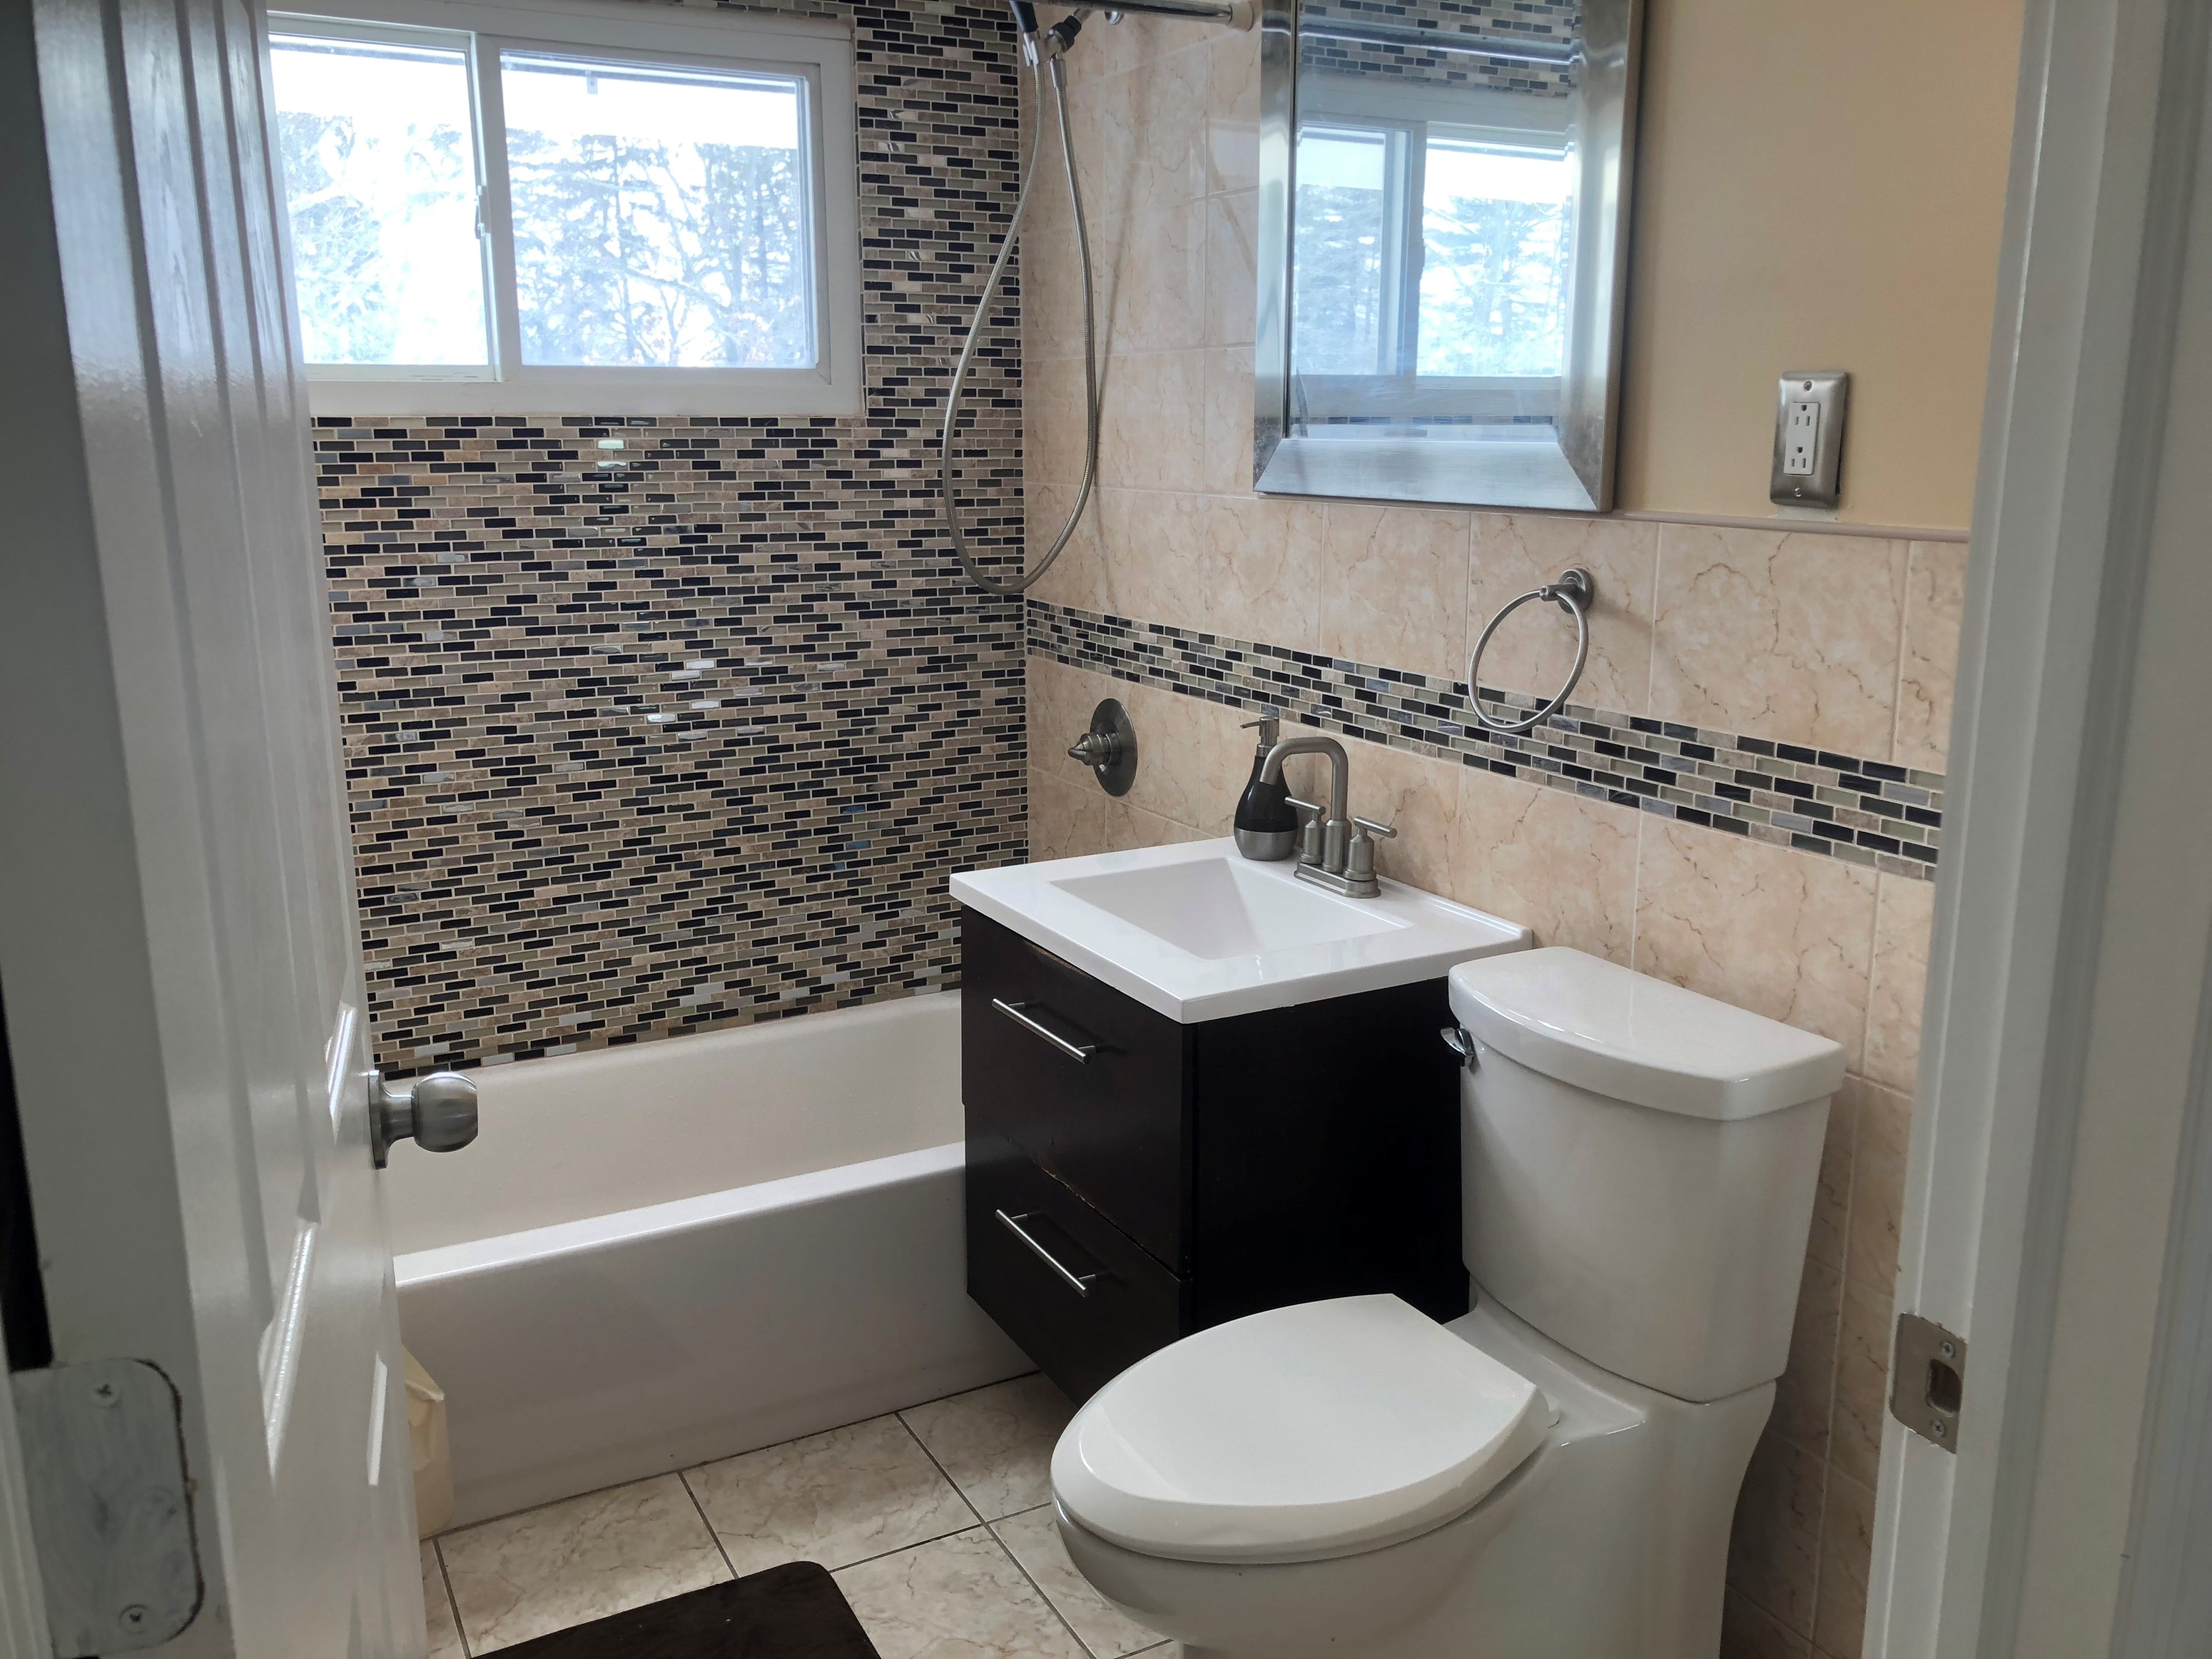 Rooms For Rent Hicksville NY Apartments House Commercial Space - Rooms for rent with private bathroom and kitchen